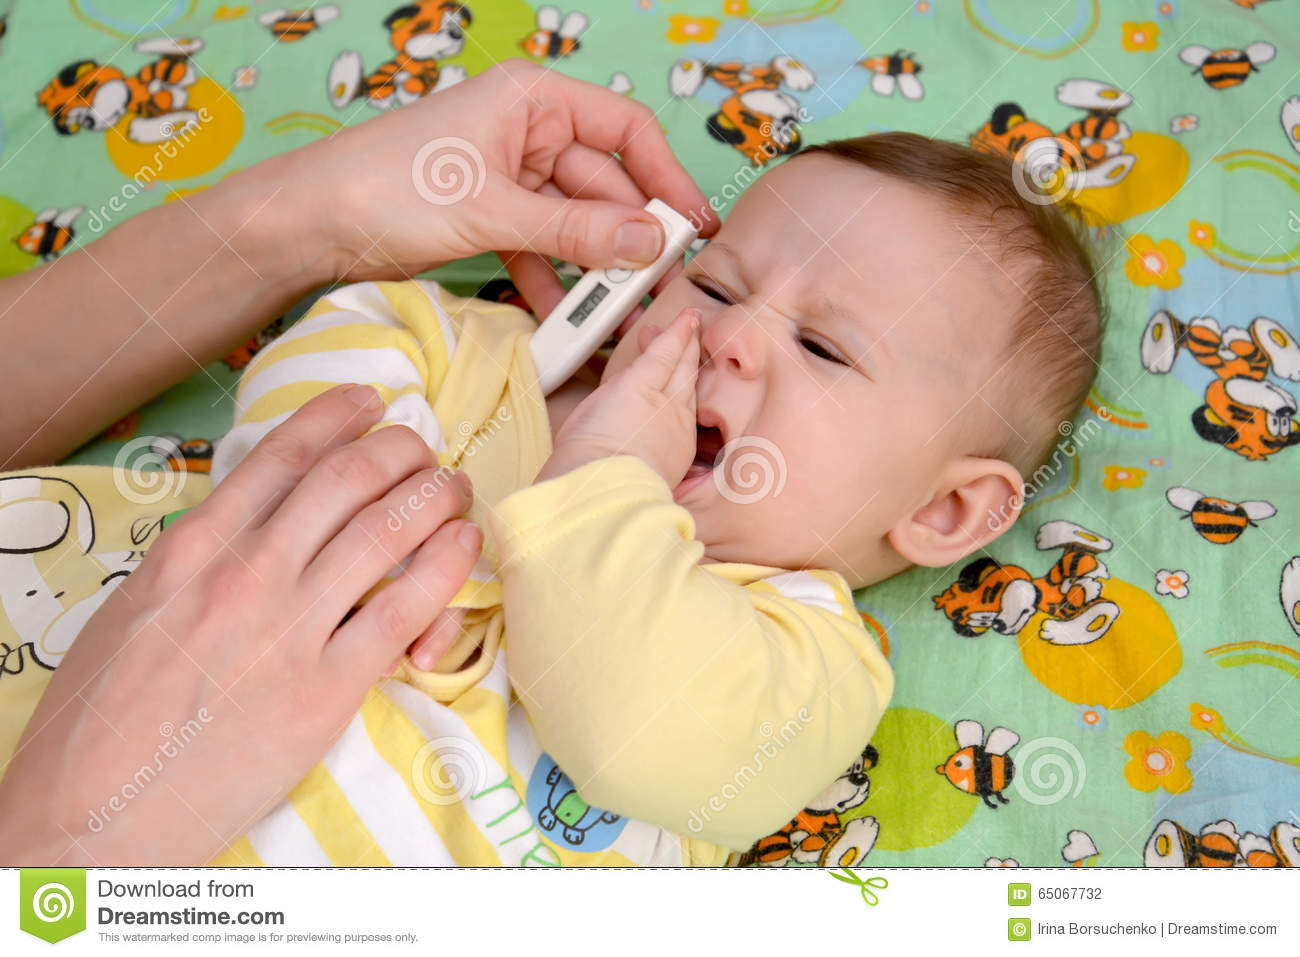 Measurement of temperature to the sick crying baby the electronic thermometer